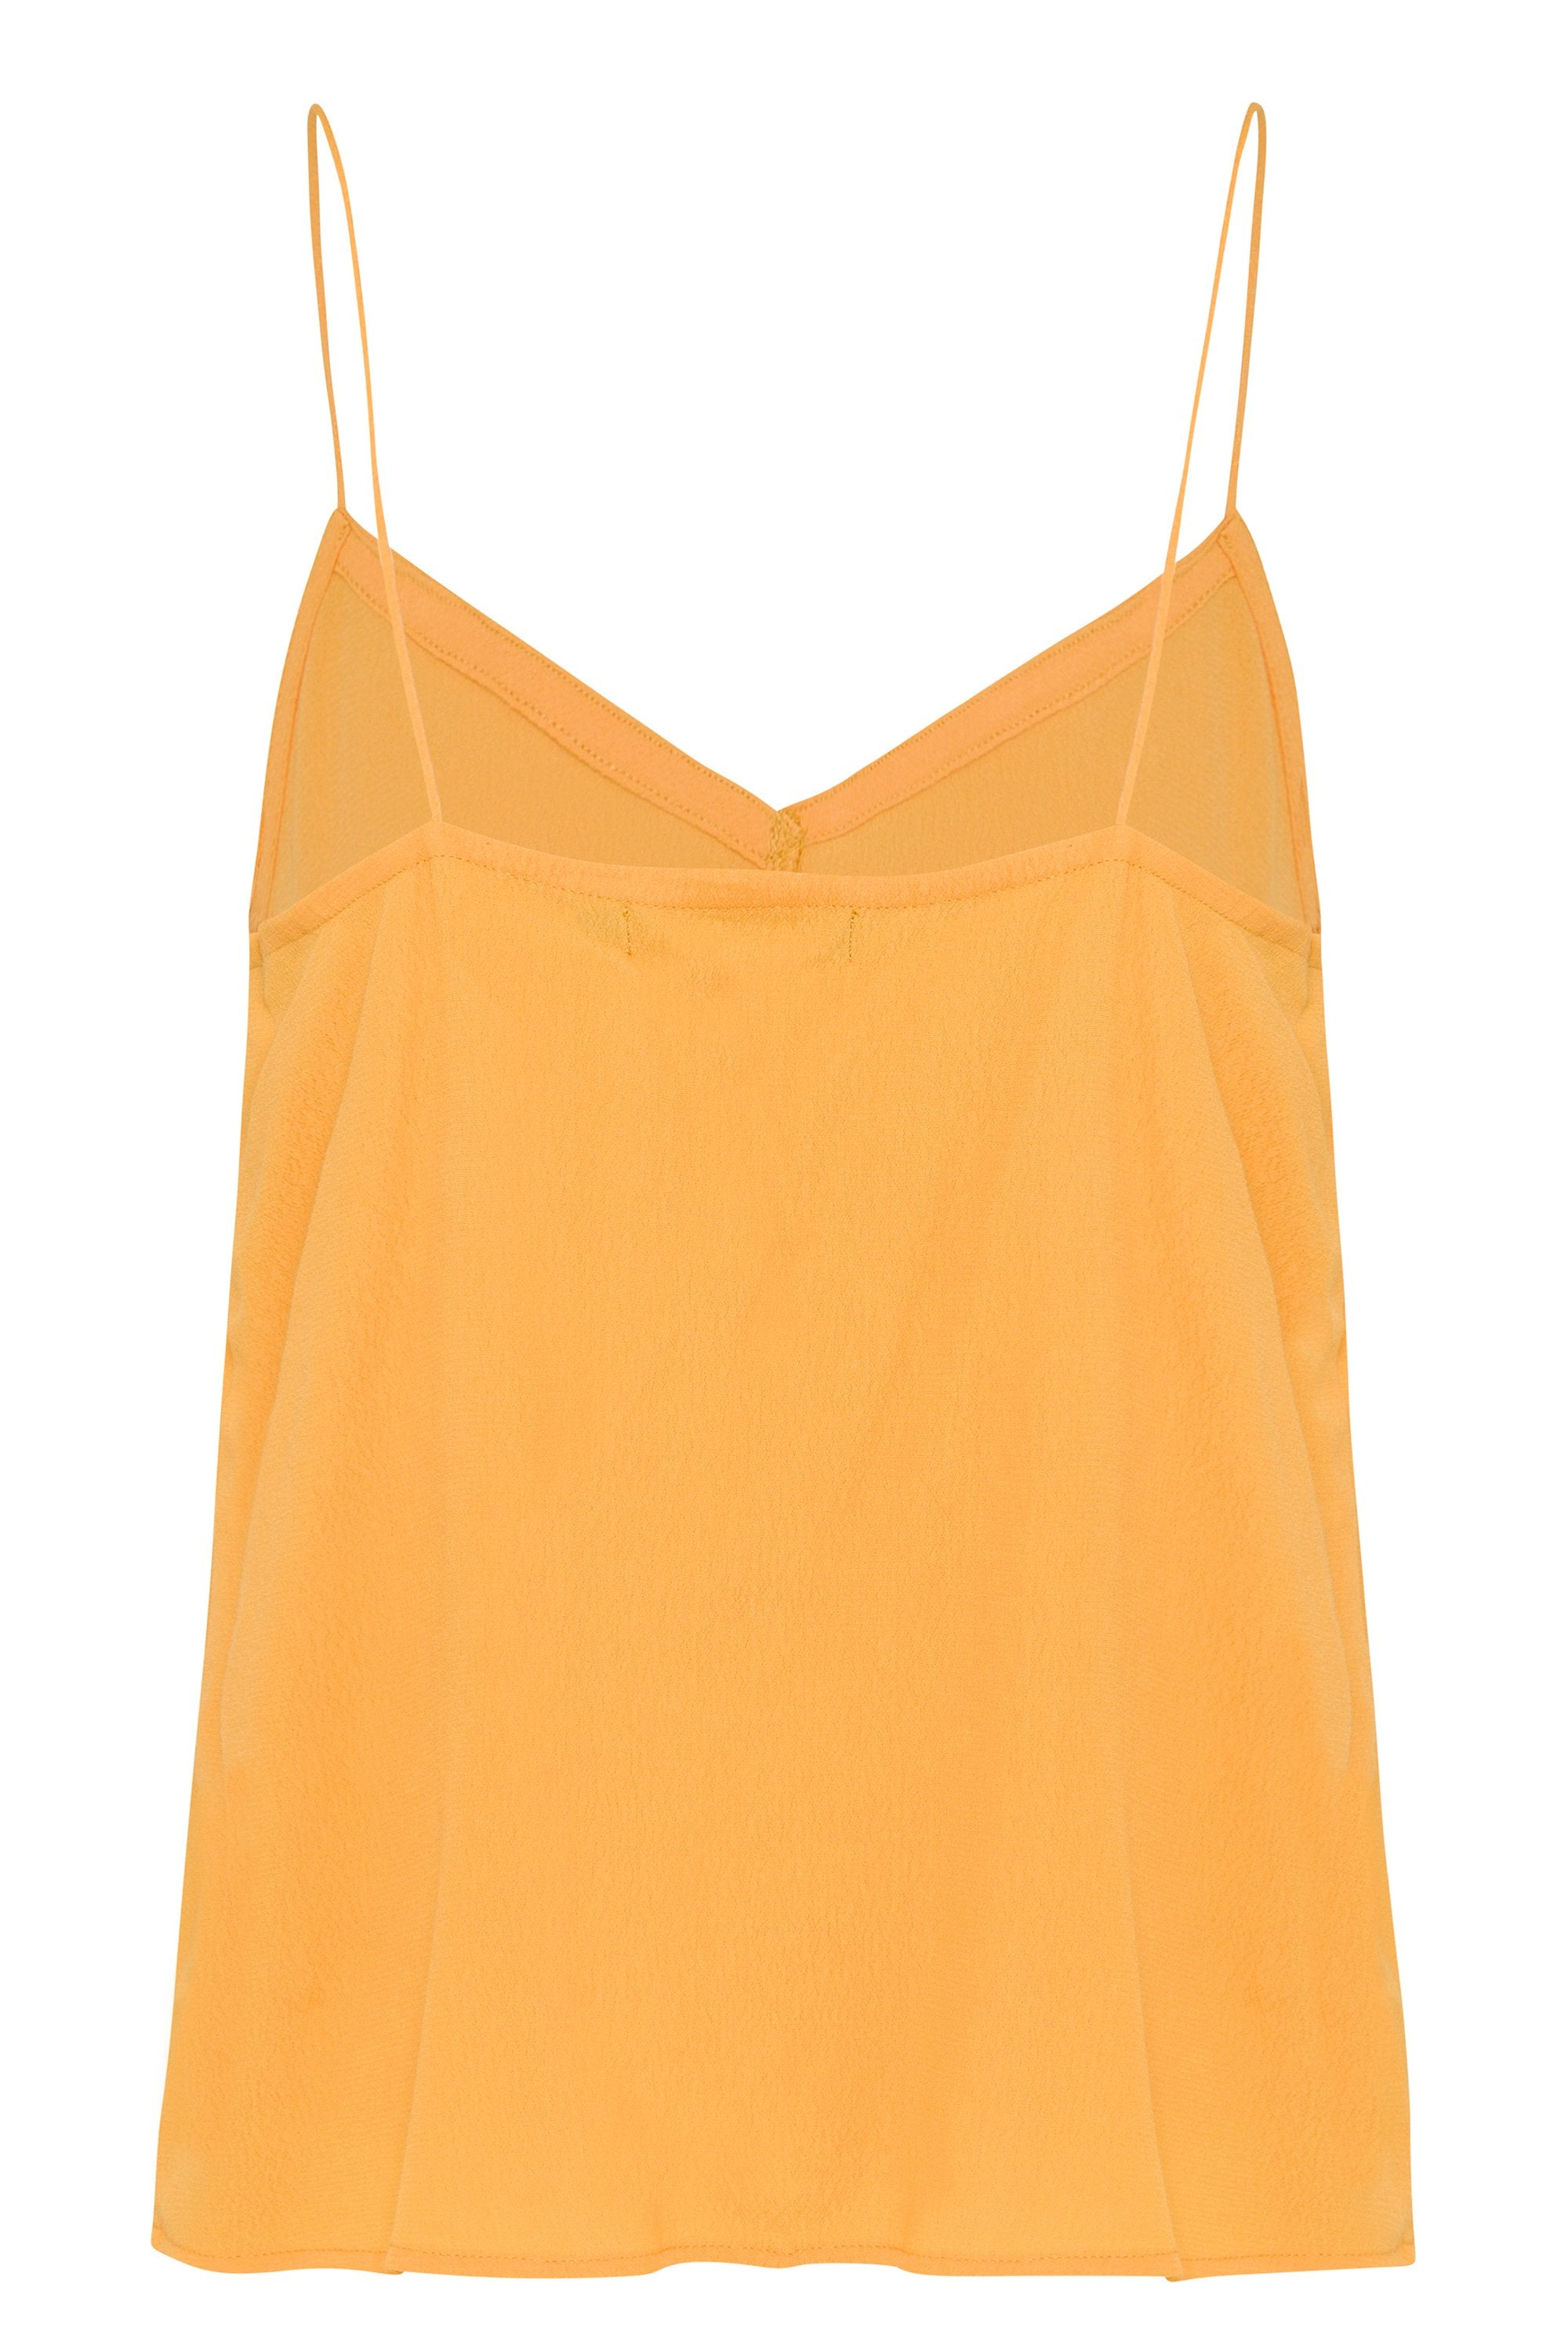 Ania Top In Mango